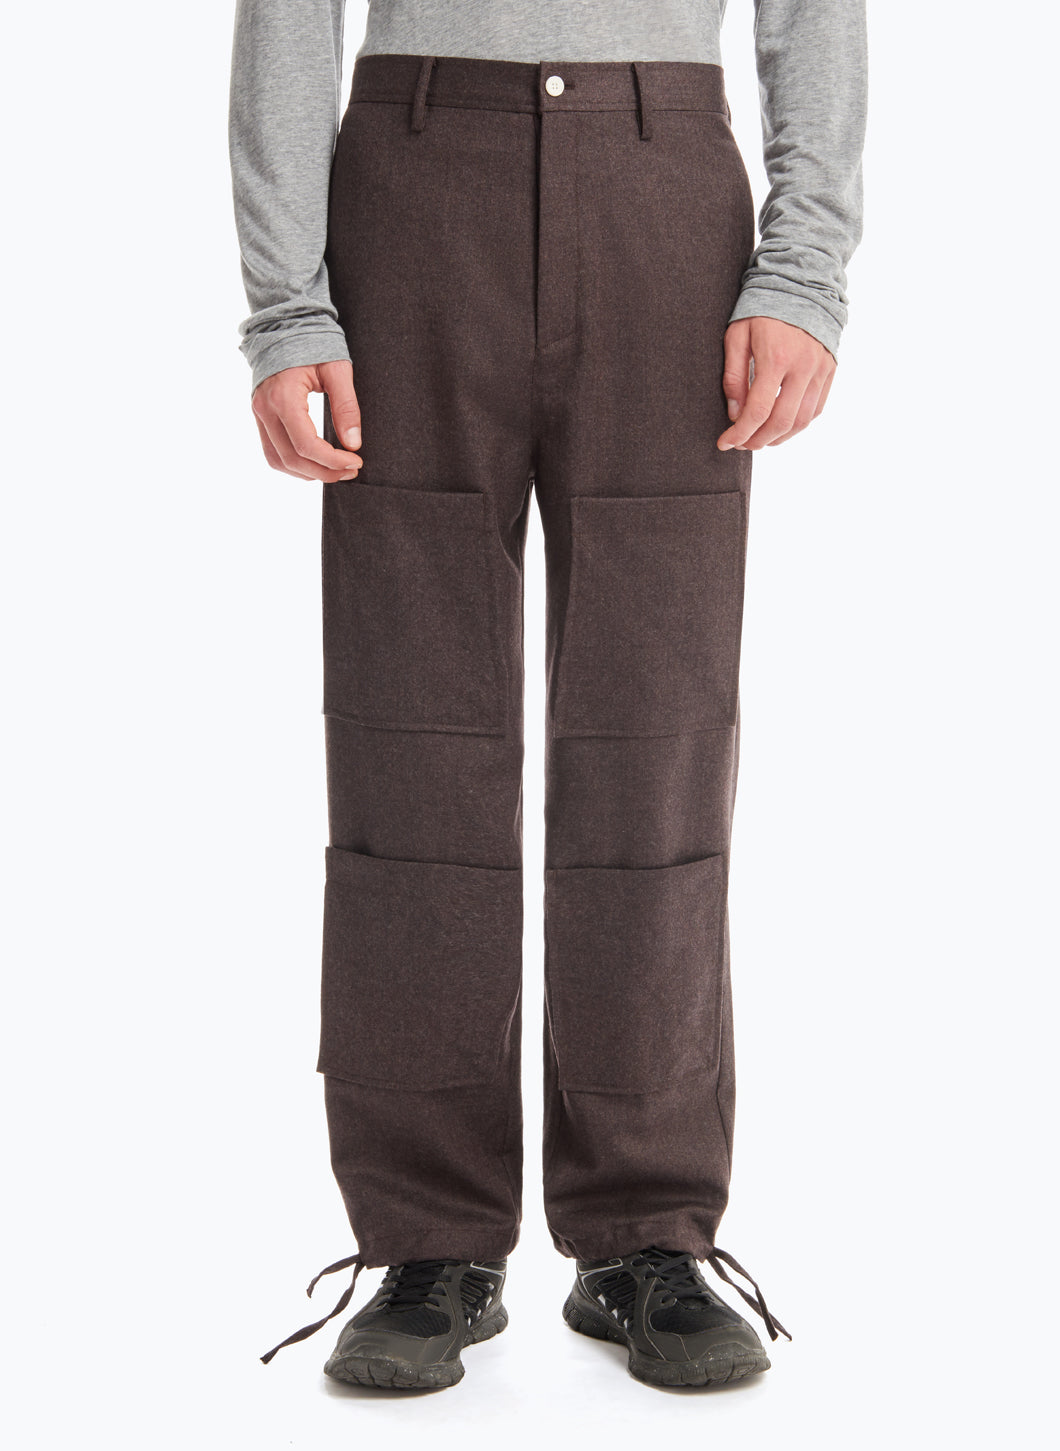 Pants with Stitched Patch Pockets in Brown Flannel Wool